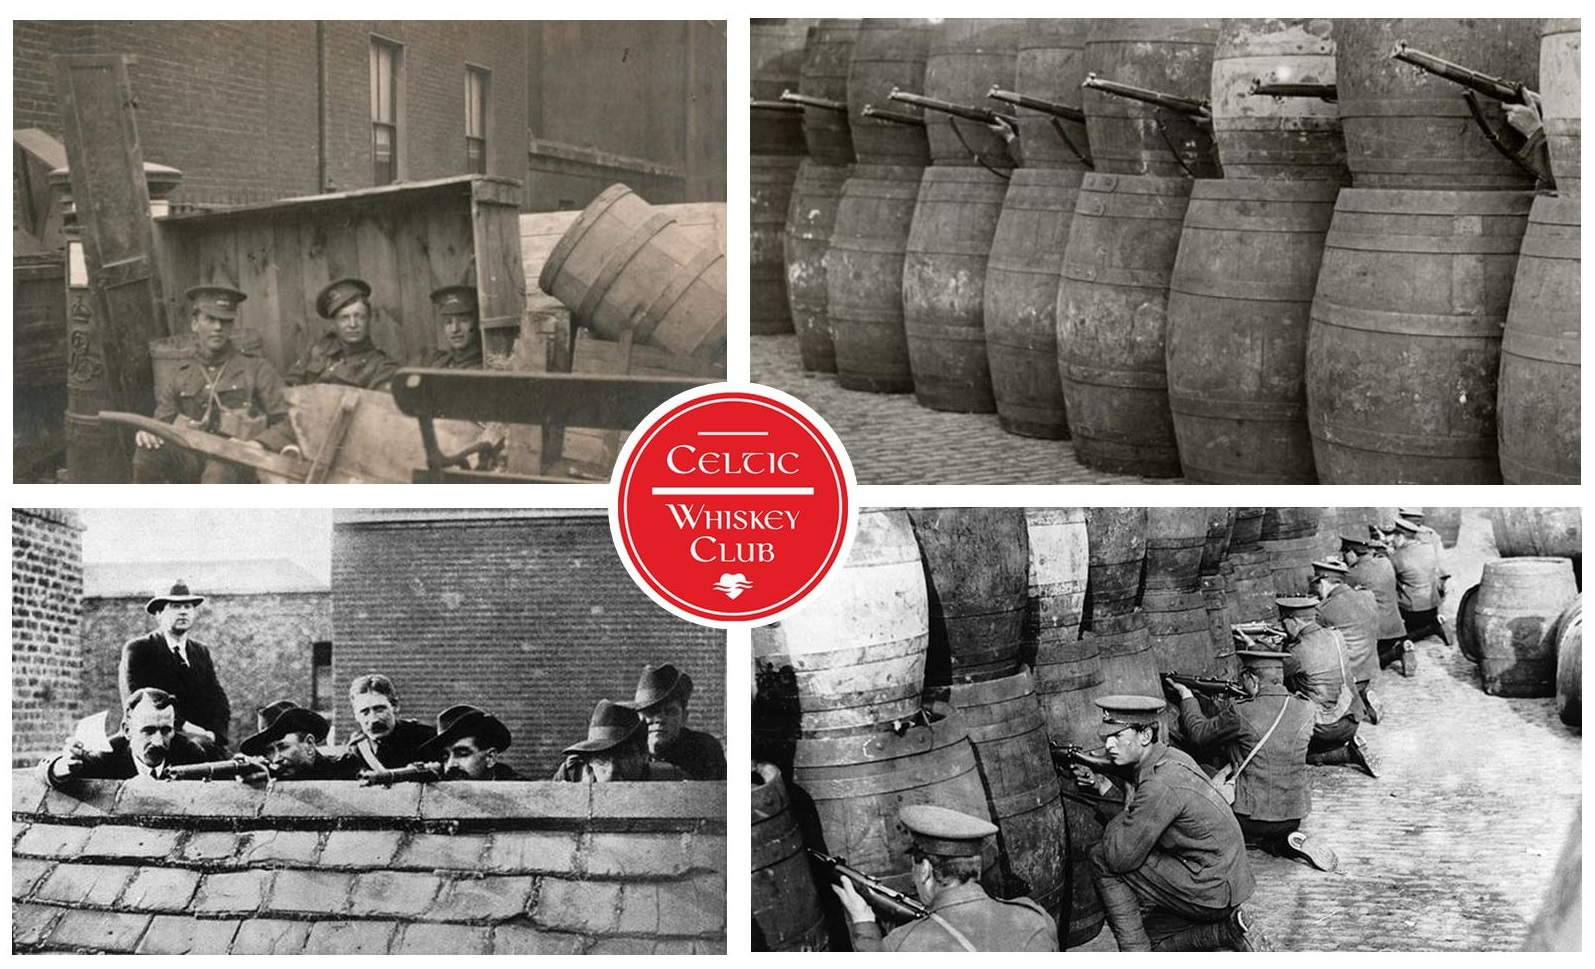 Easter_rising_1916_distilleries